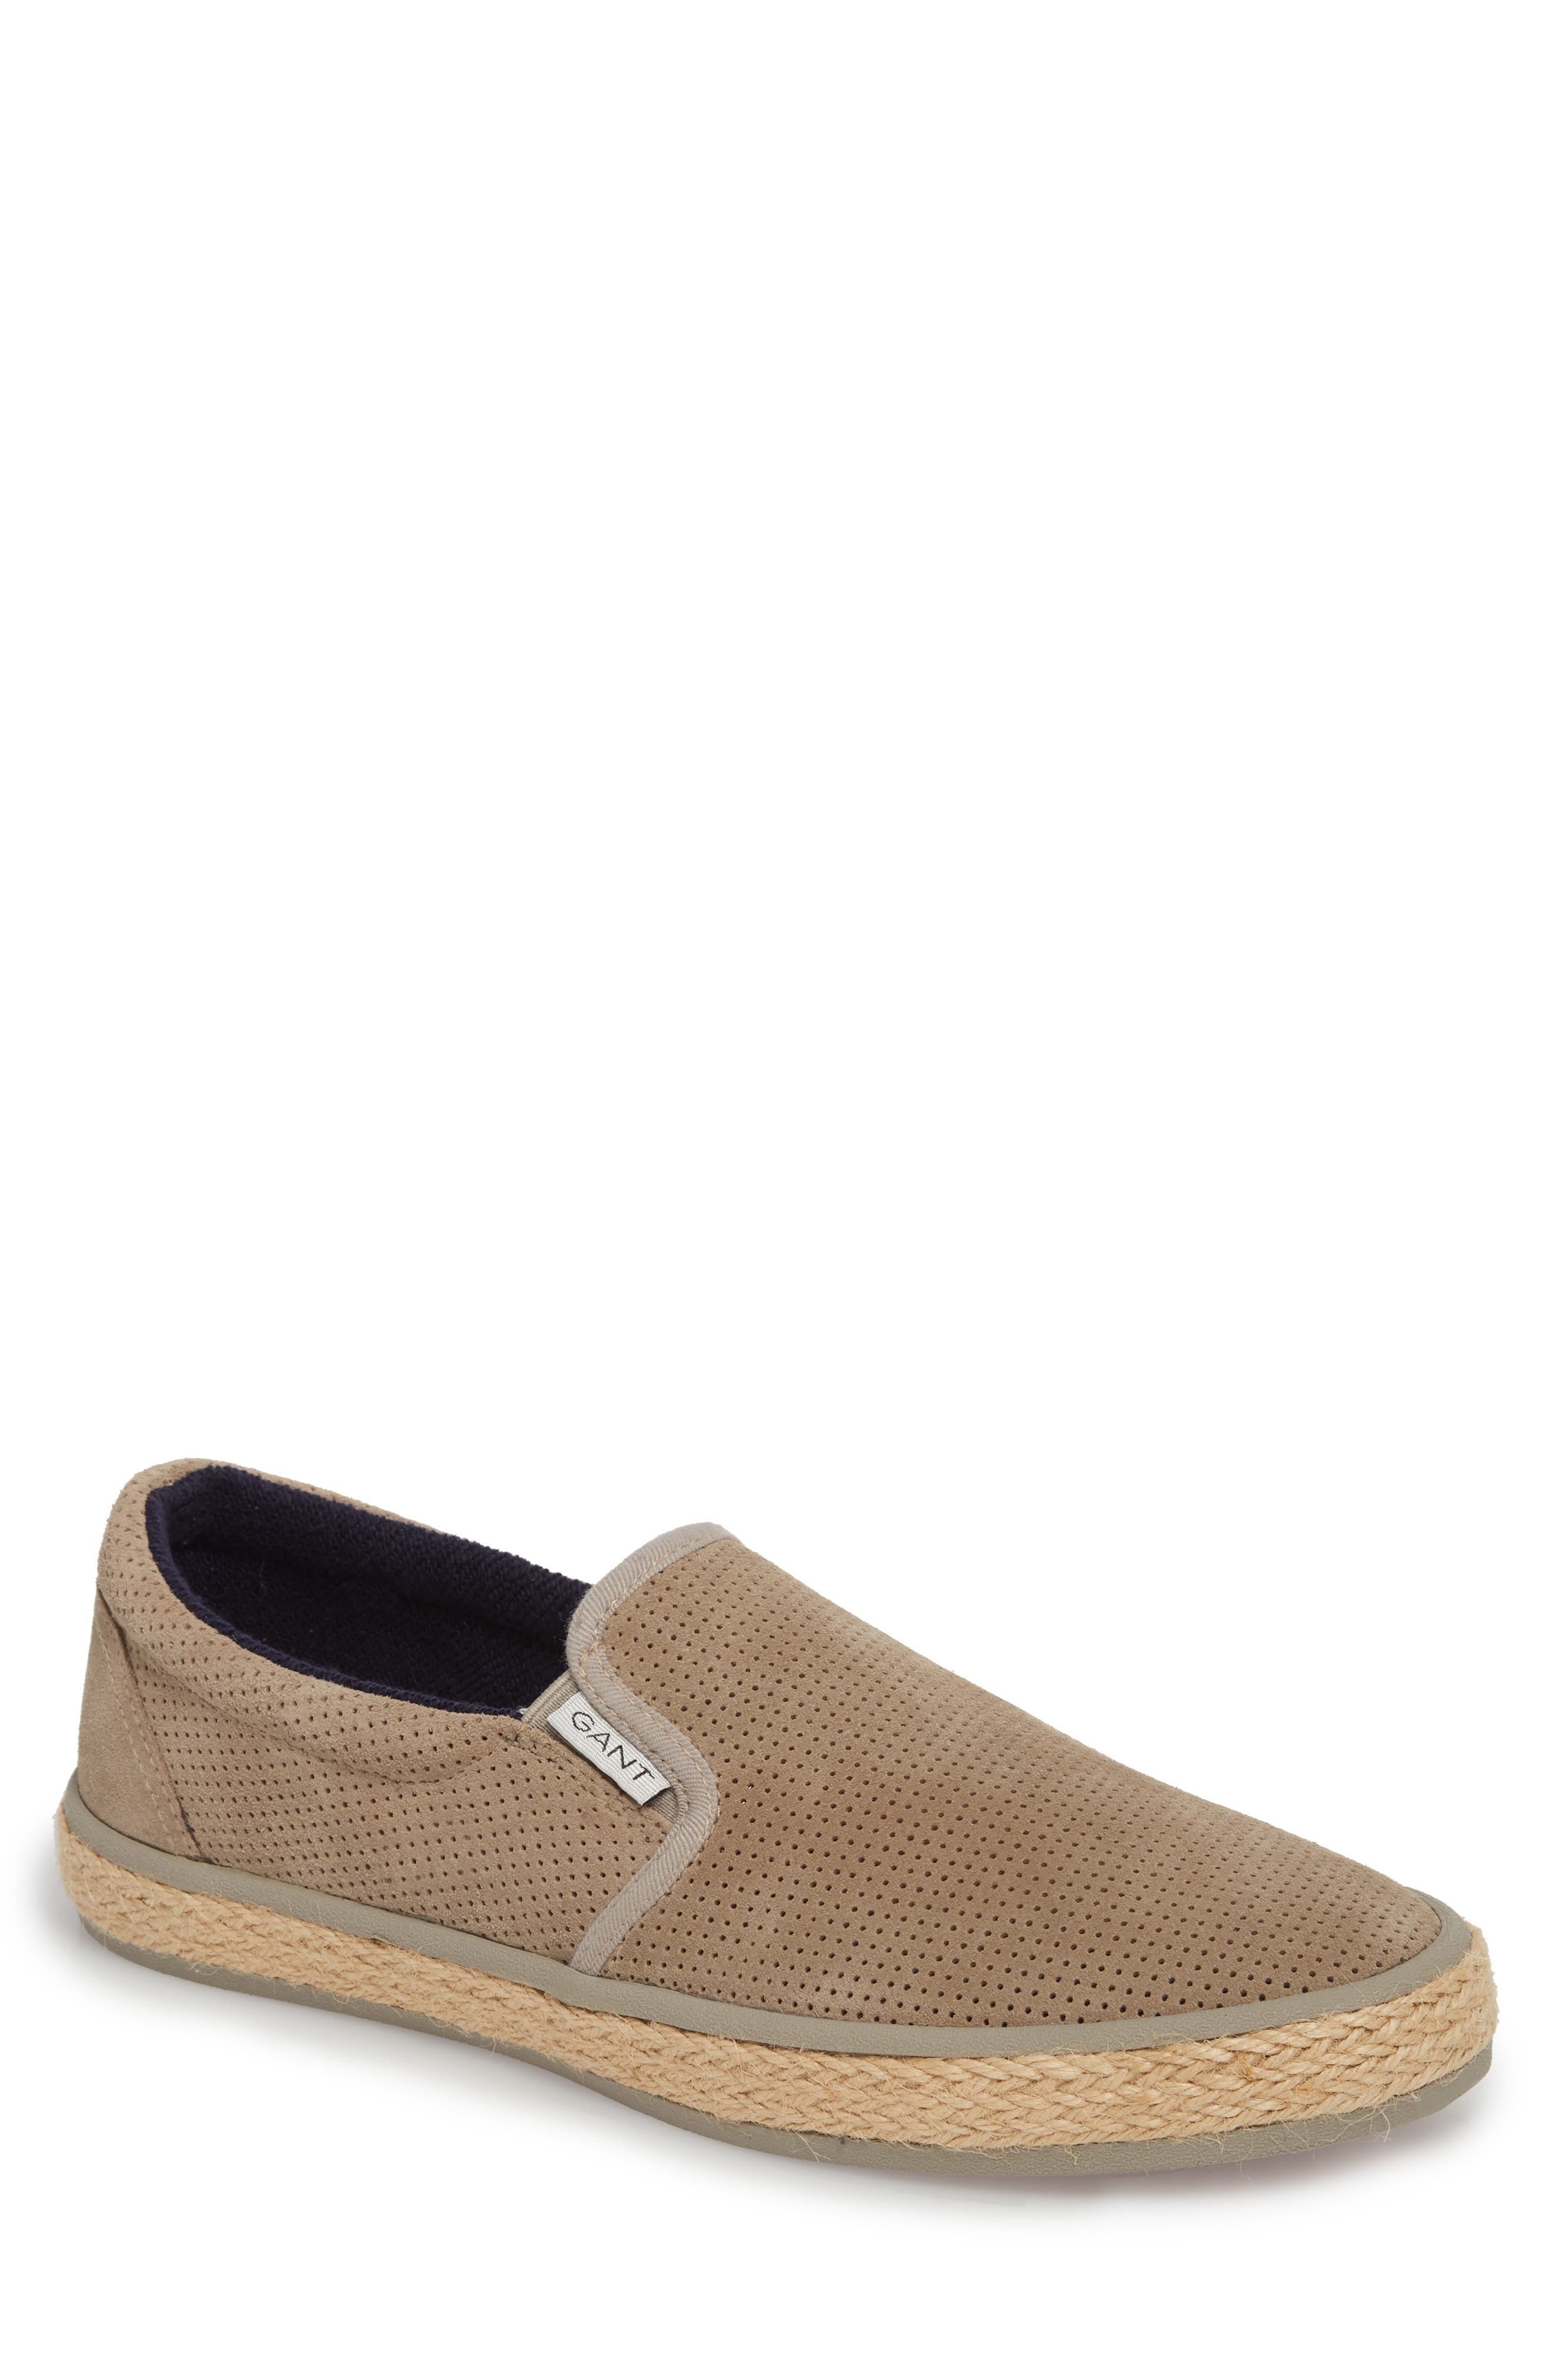 Master Perforated Slip-On Sneaker,                             Main thumbnail 1, color,                             Cashew Brown